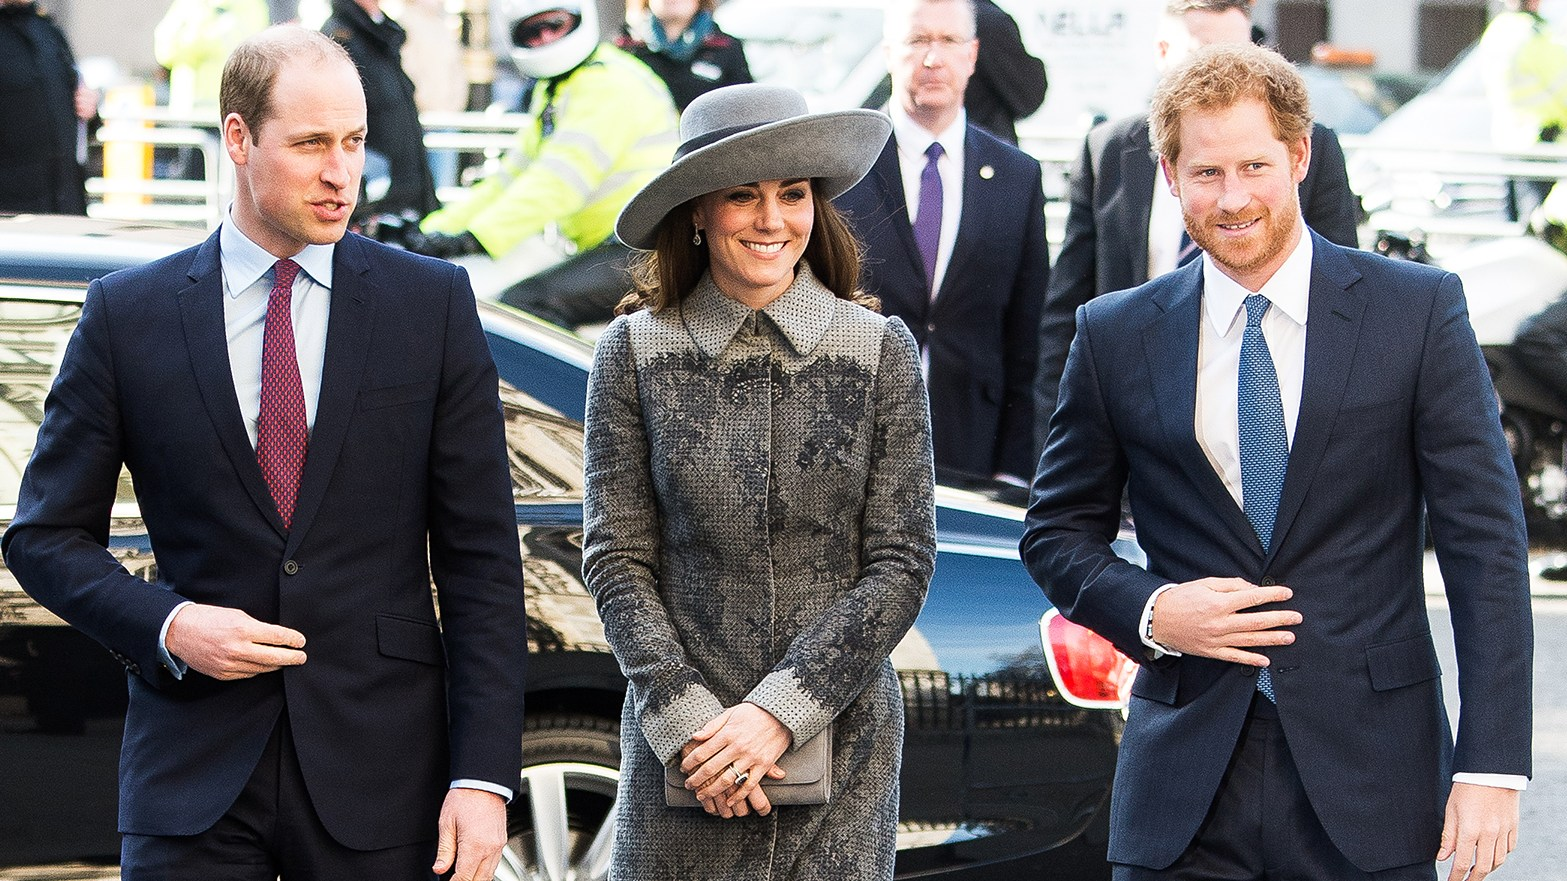 Prince William, Kate Middleton and Prince Harry